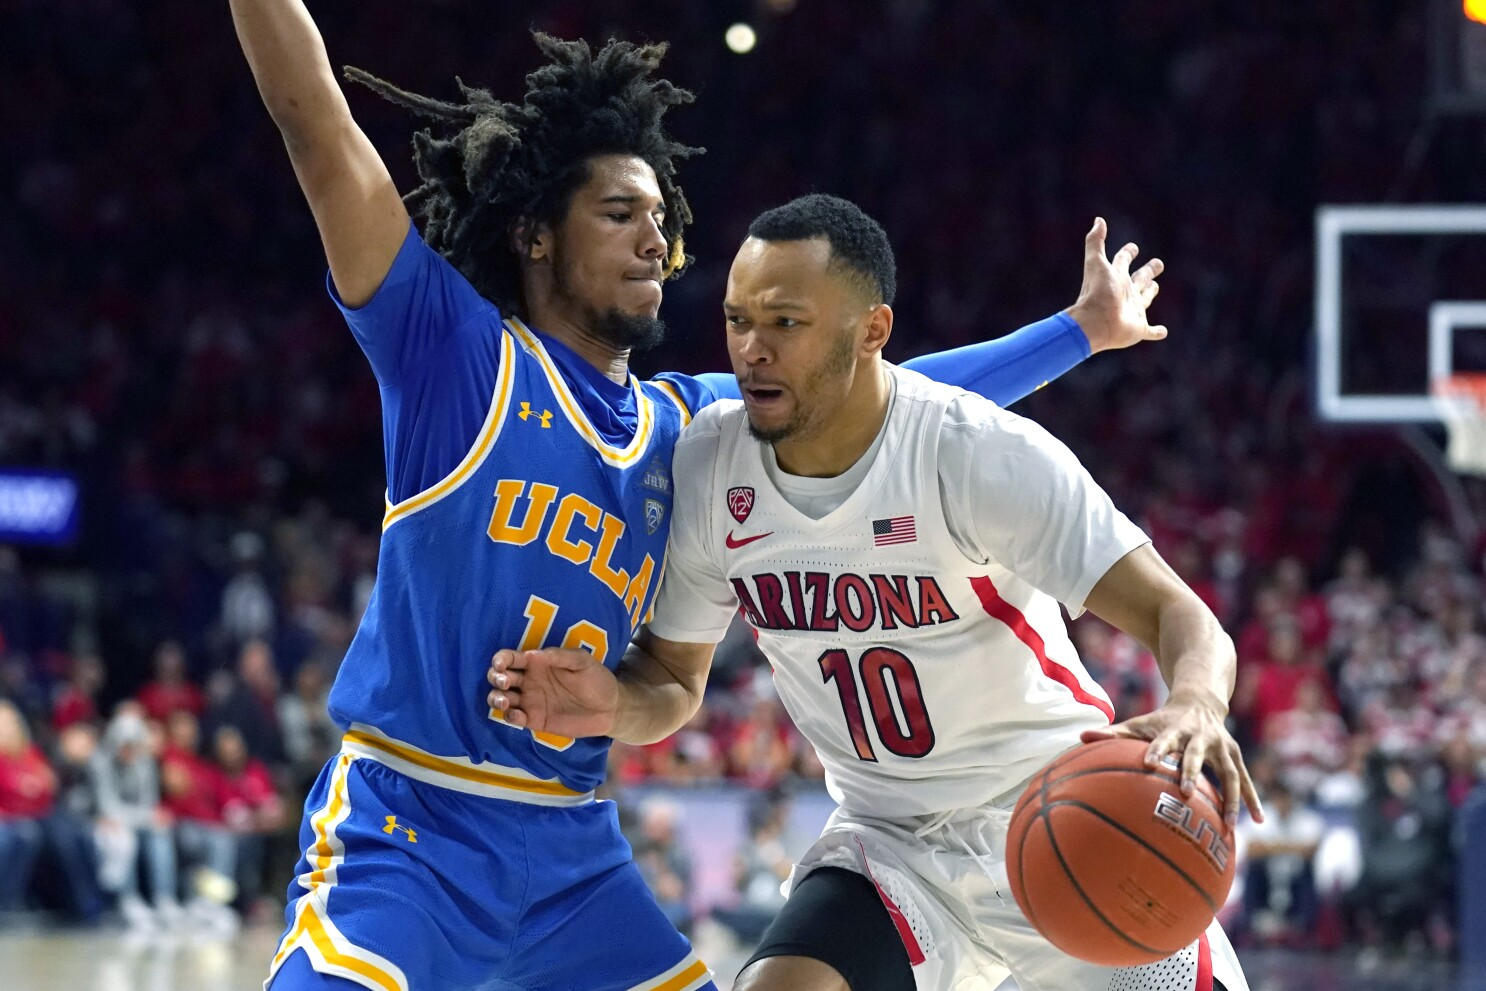 Ucla S Victory Over Arizona Bolsters Expectations For Bruins Los Angeles Times